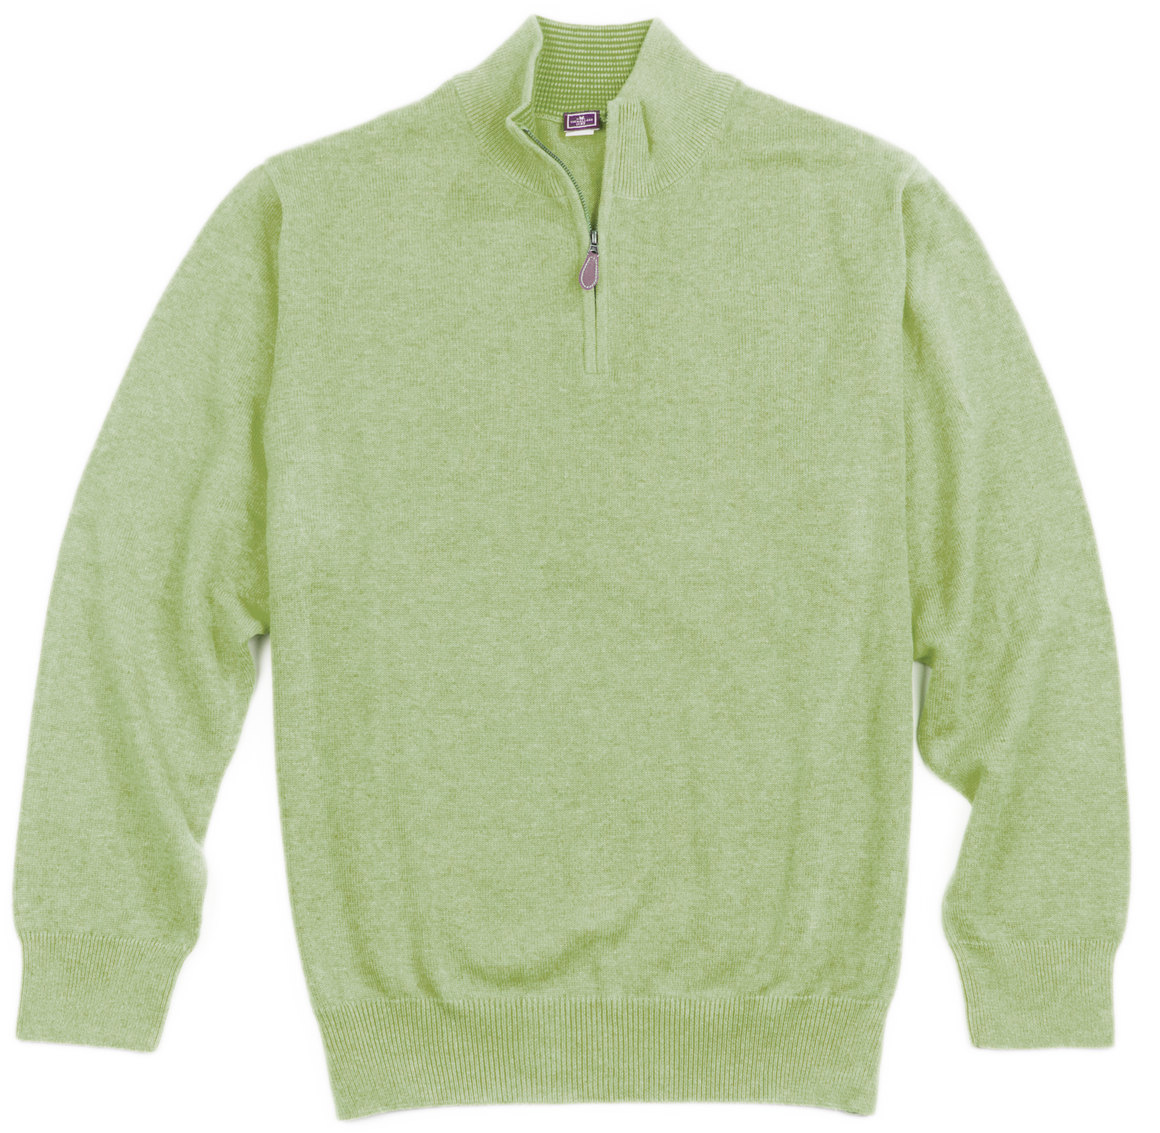 Mallard 1/4 Zip Pullover - Green - The Mallard